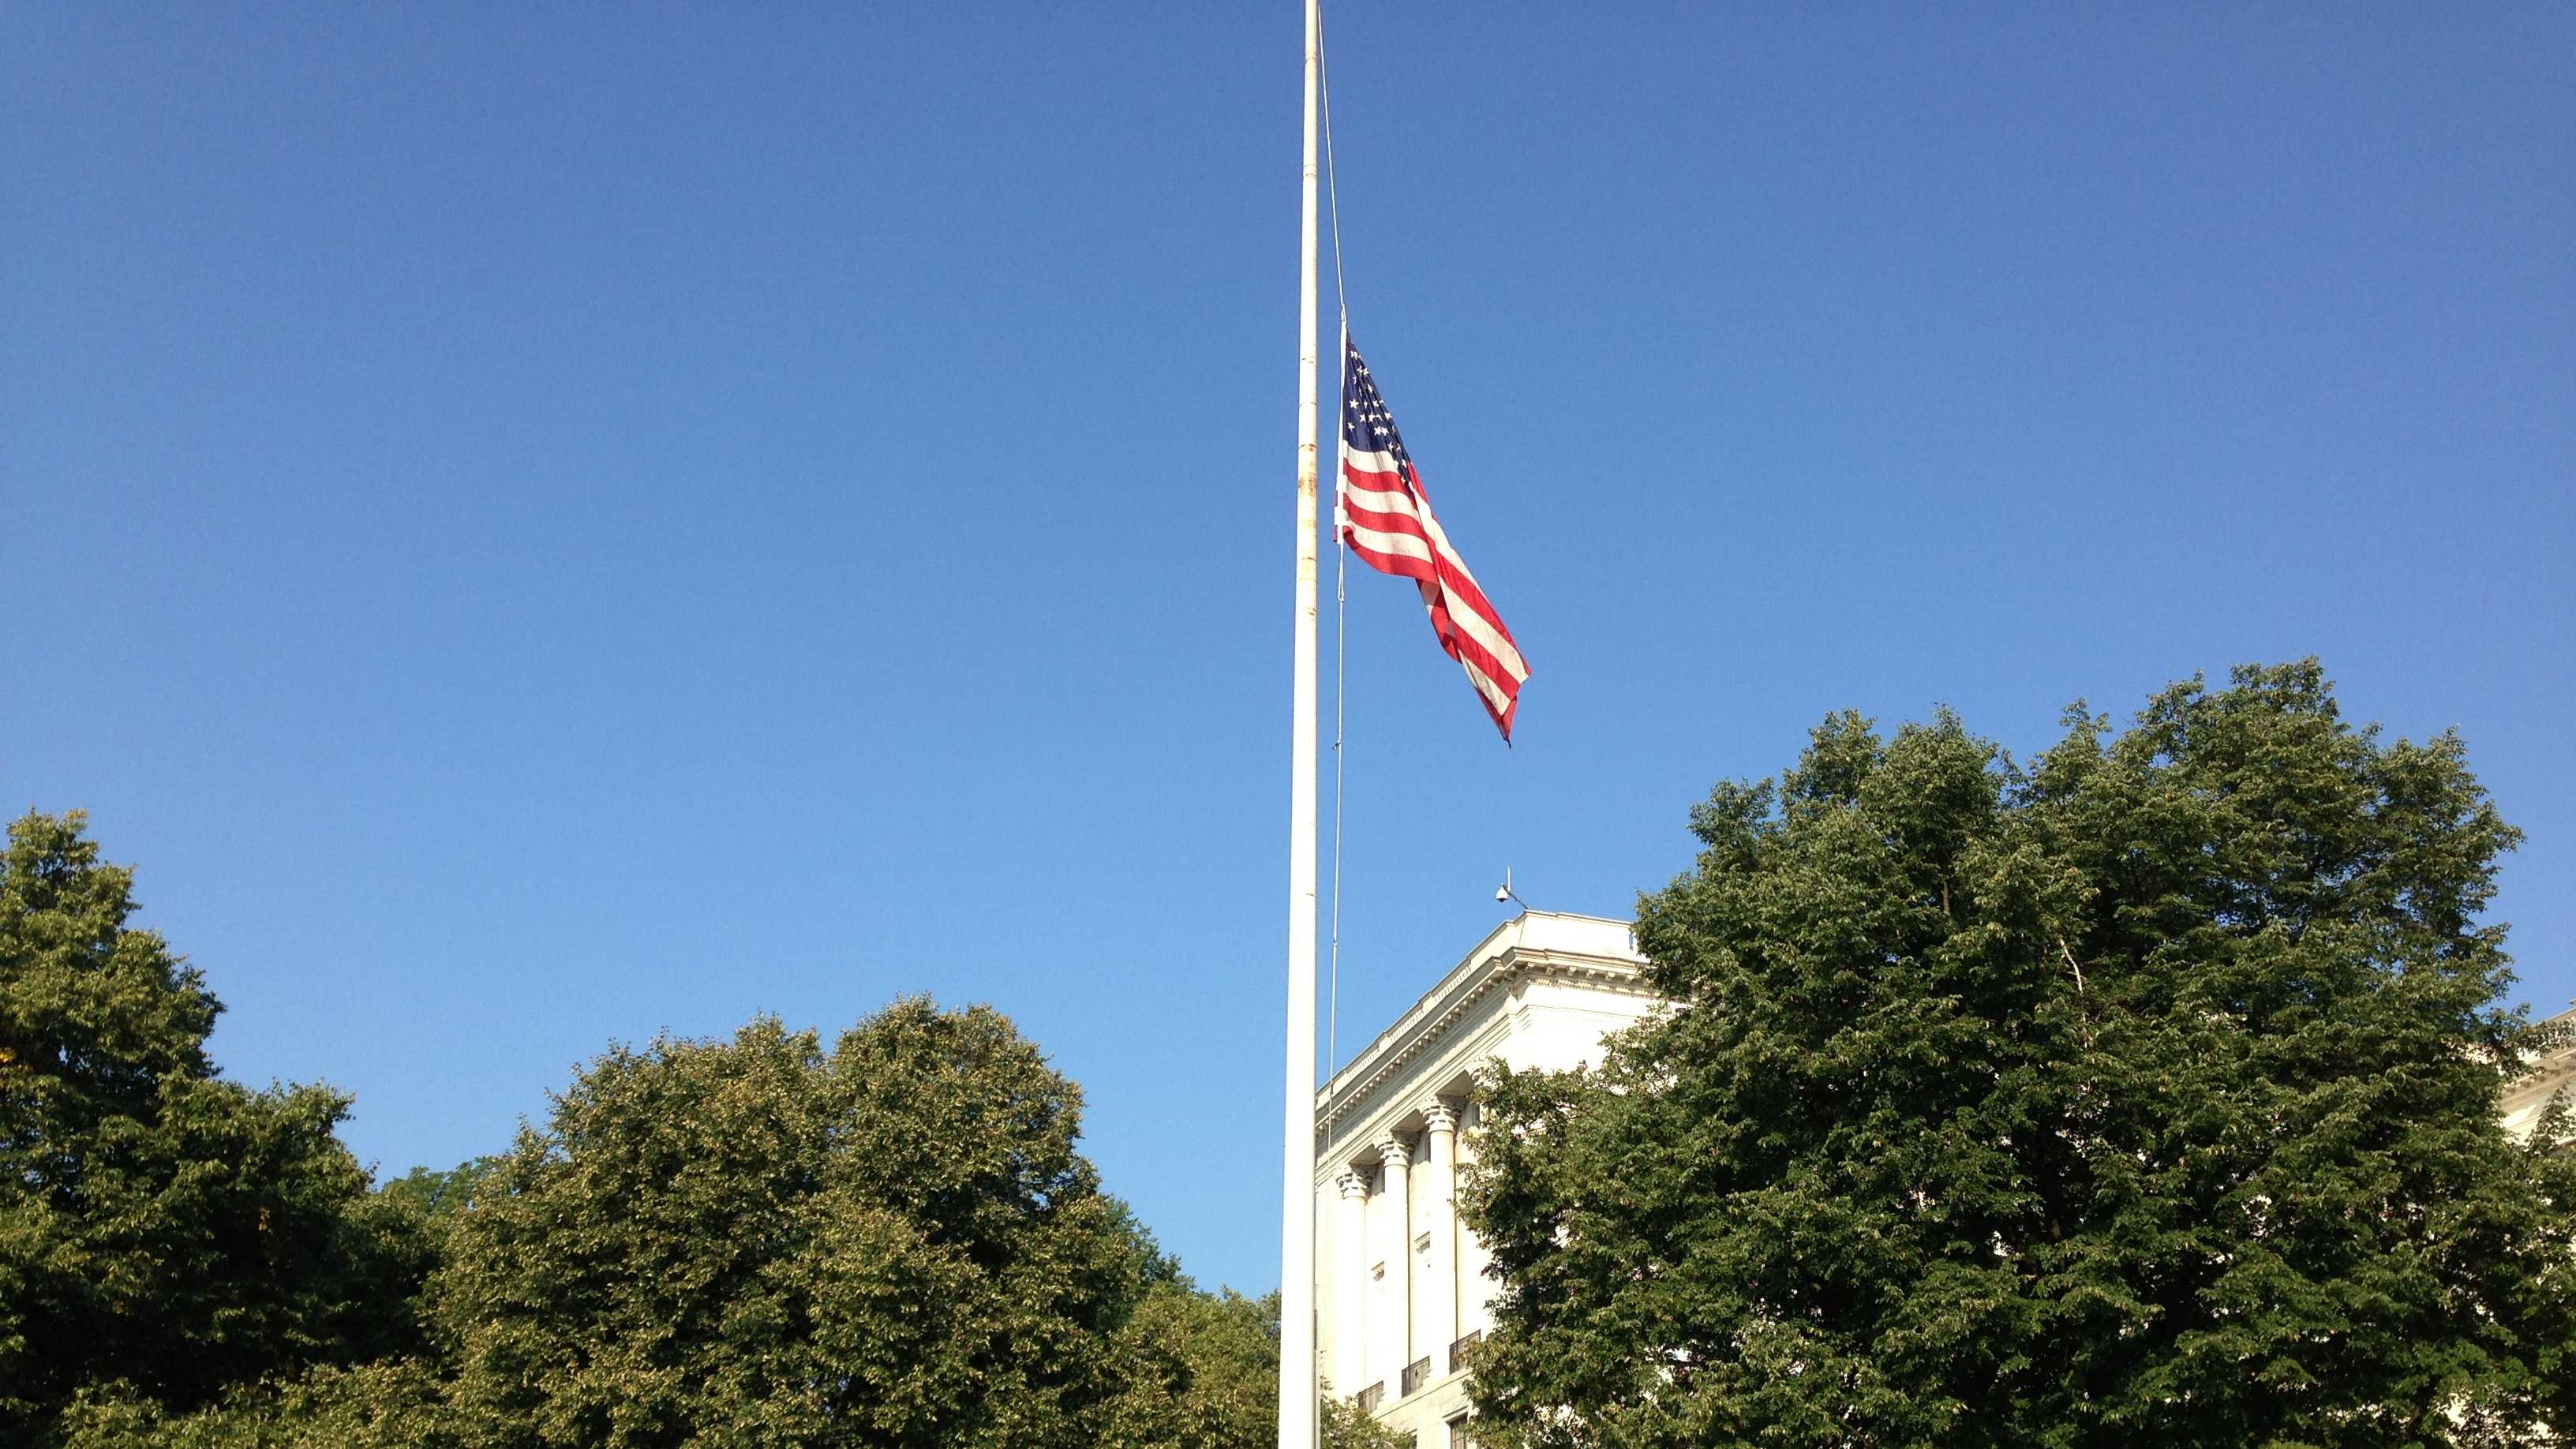 The flag is lowered at the Statehouse.